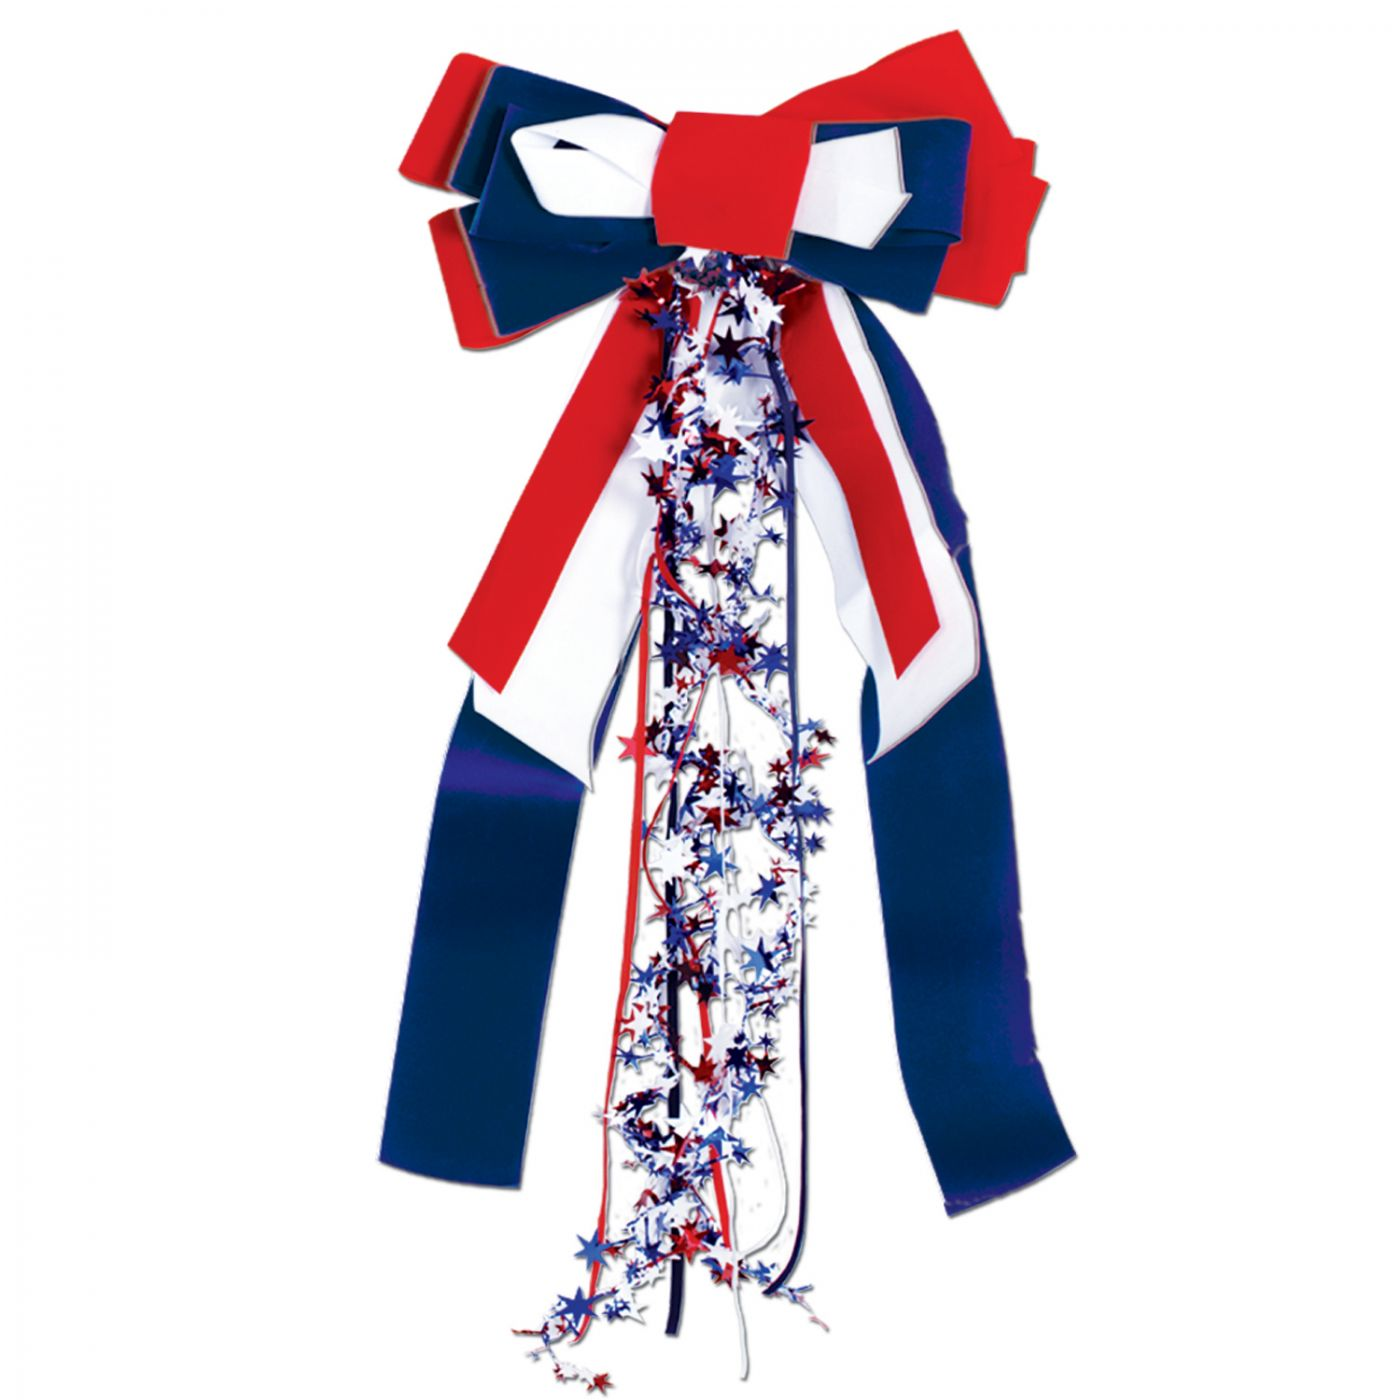 Patriots Pride Ribbon image